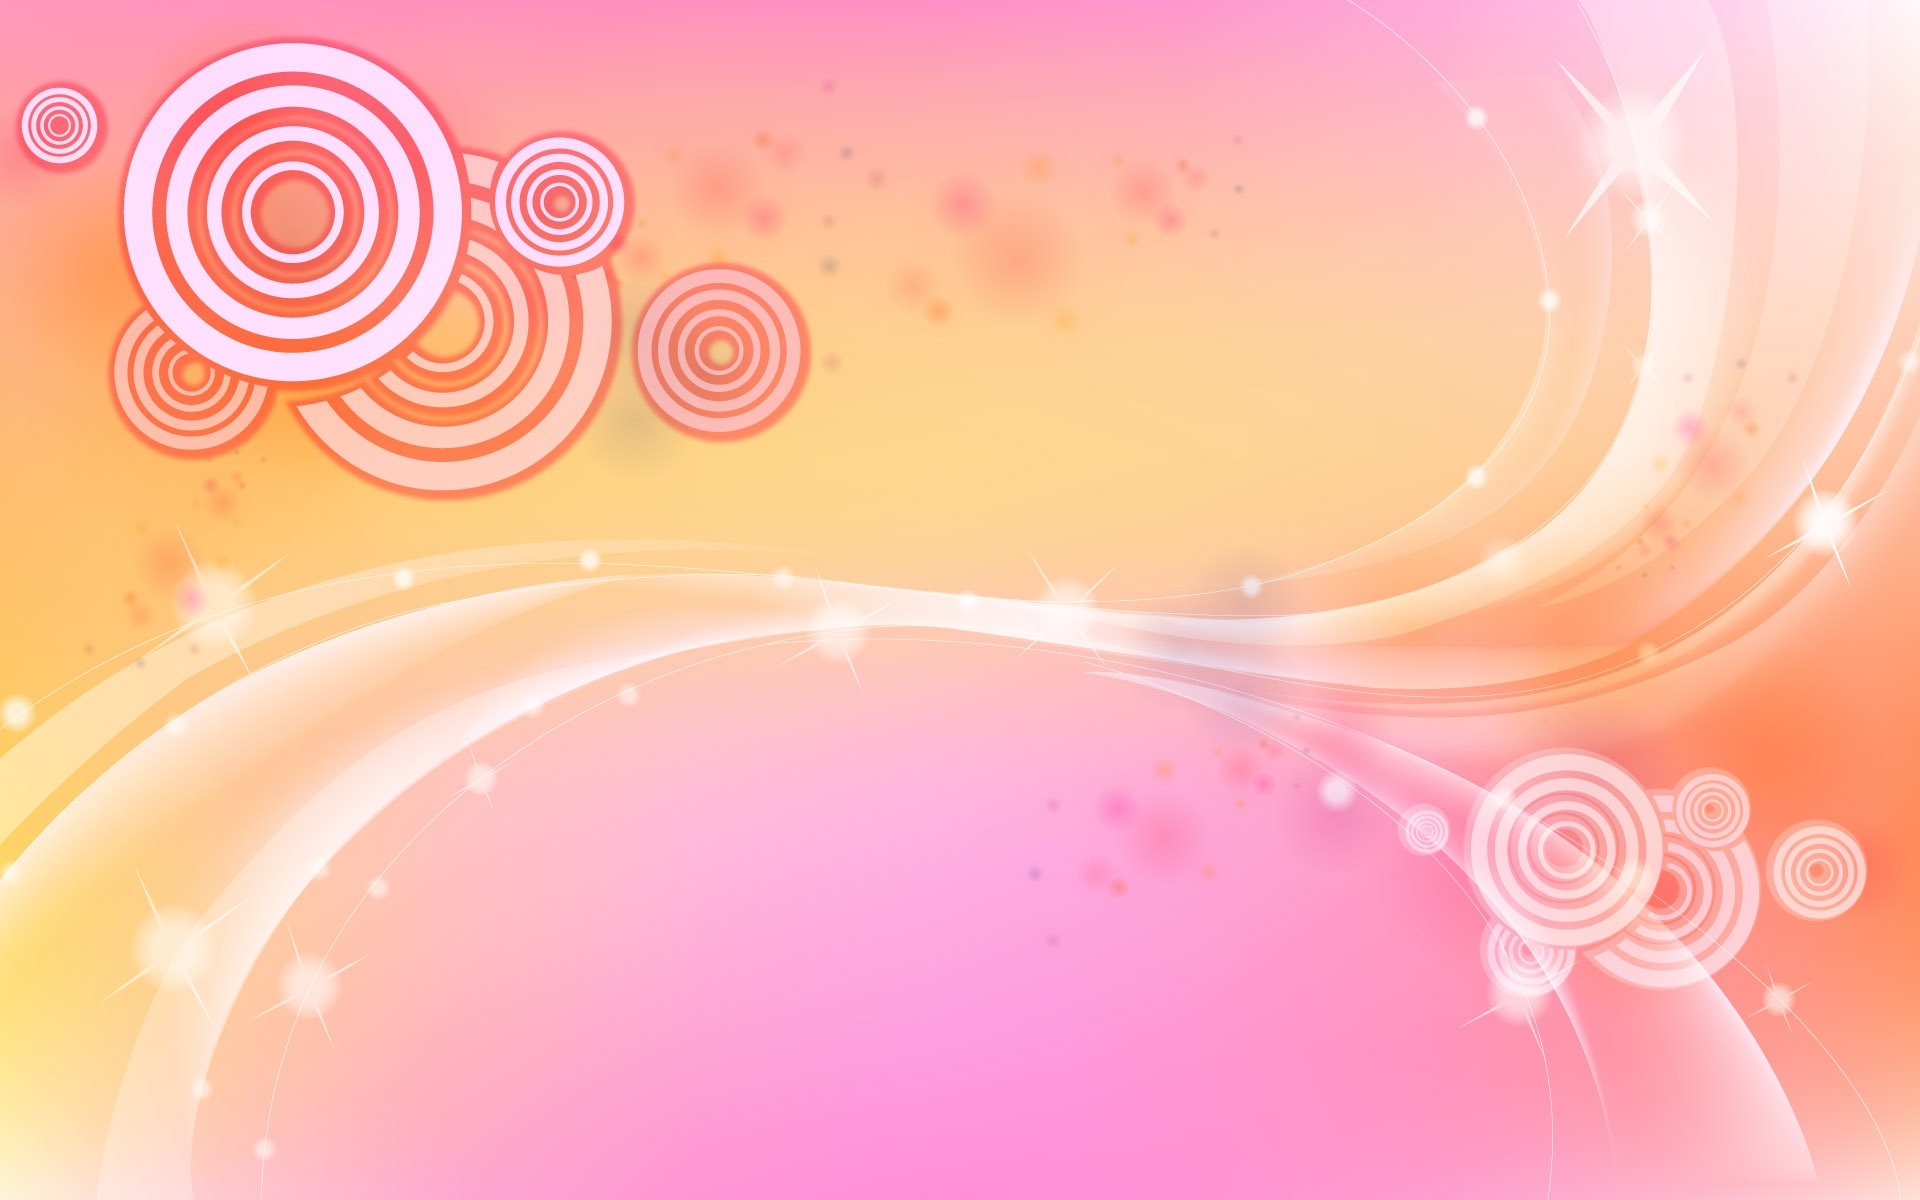 1920x1200 Pink Vector Image Hd Wallpaper 1920x1200 Gludy